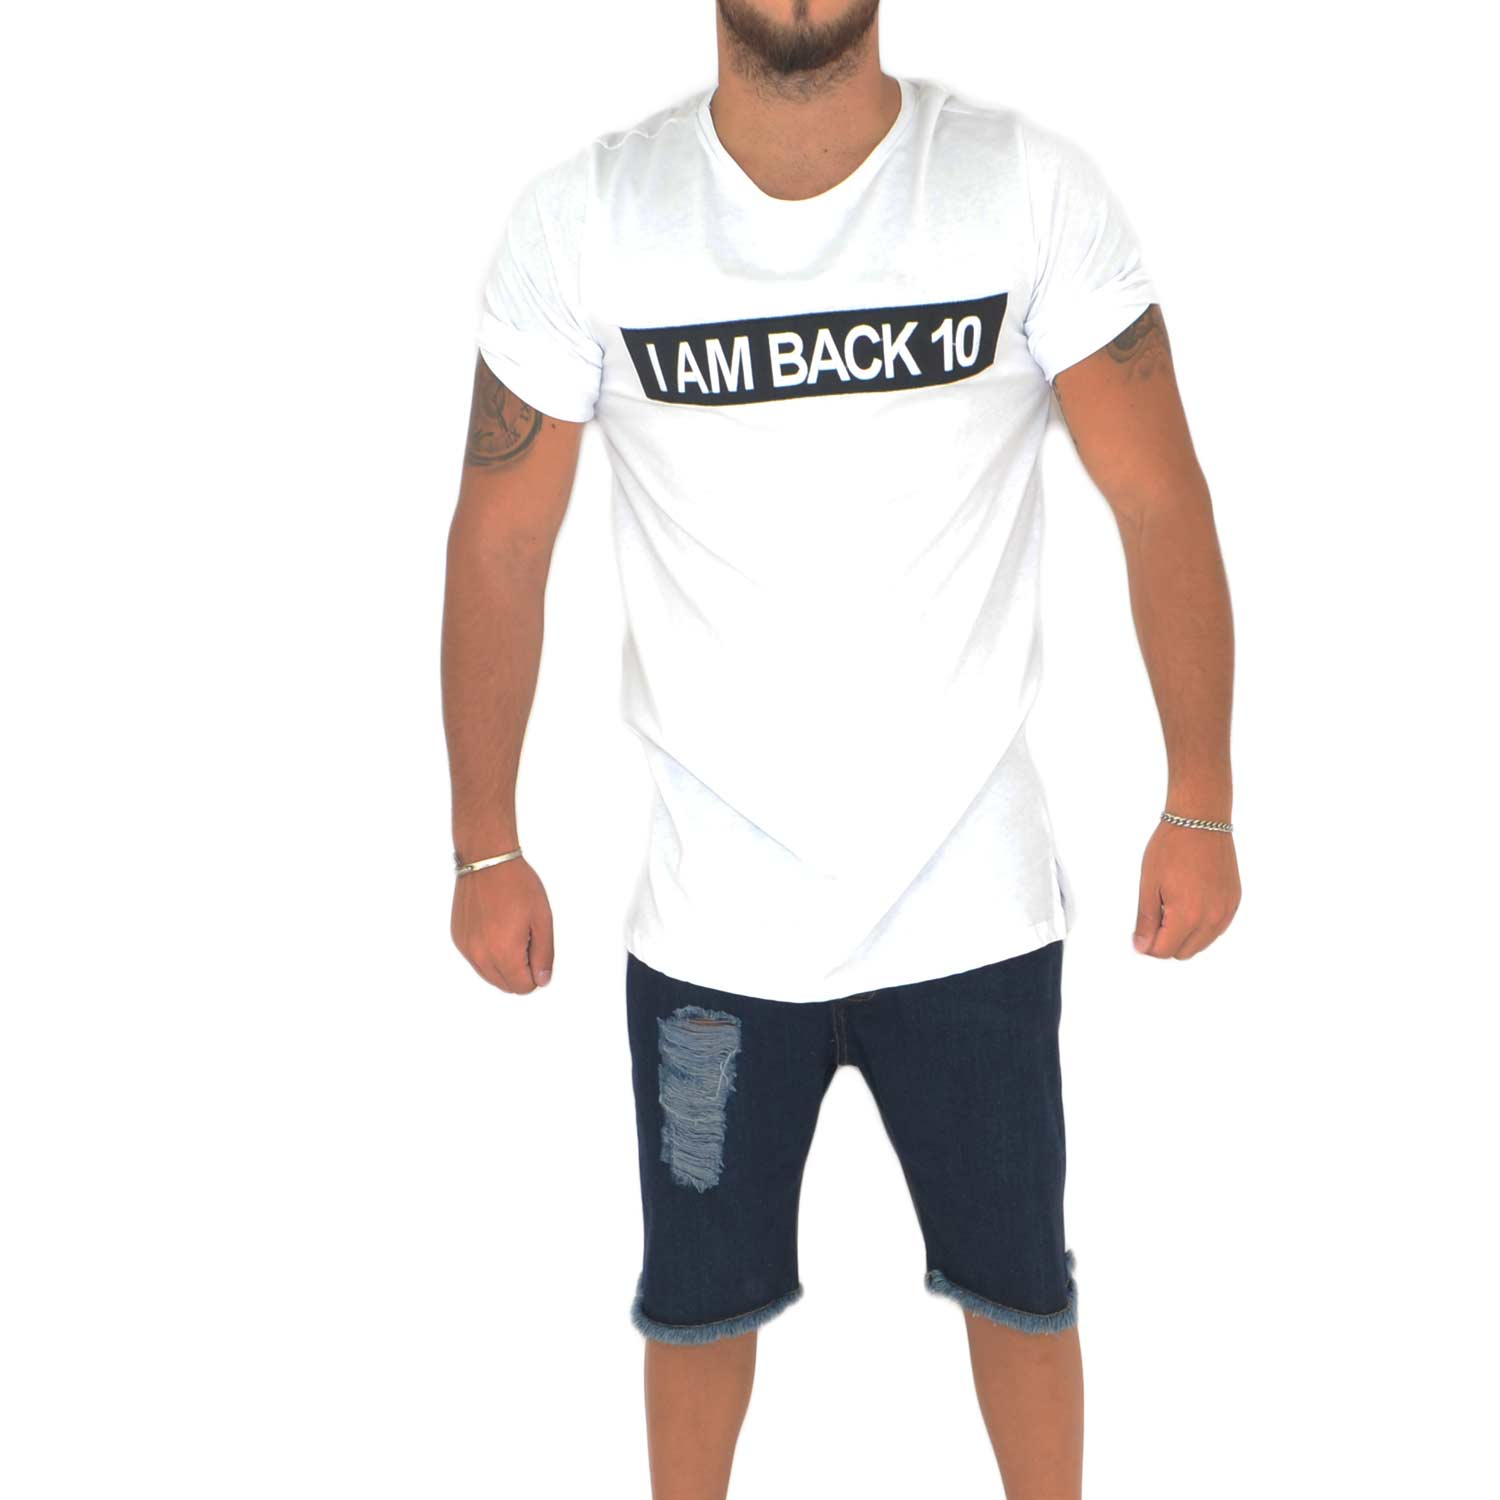 T- shirt basic uomo in cotone bianco slim fit girocollo con cucitura a contrasto I'M BACK 10 made in italy.